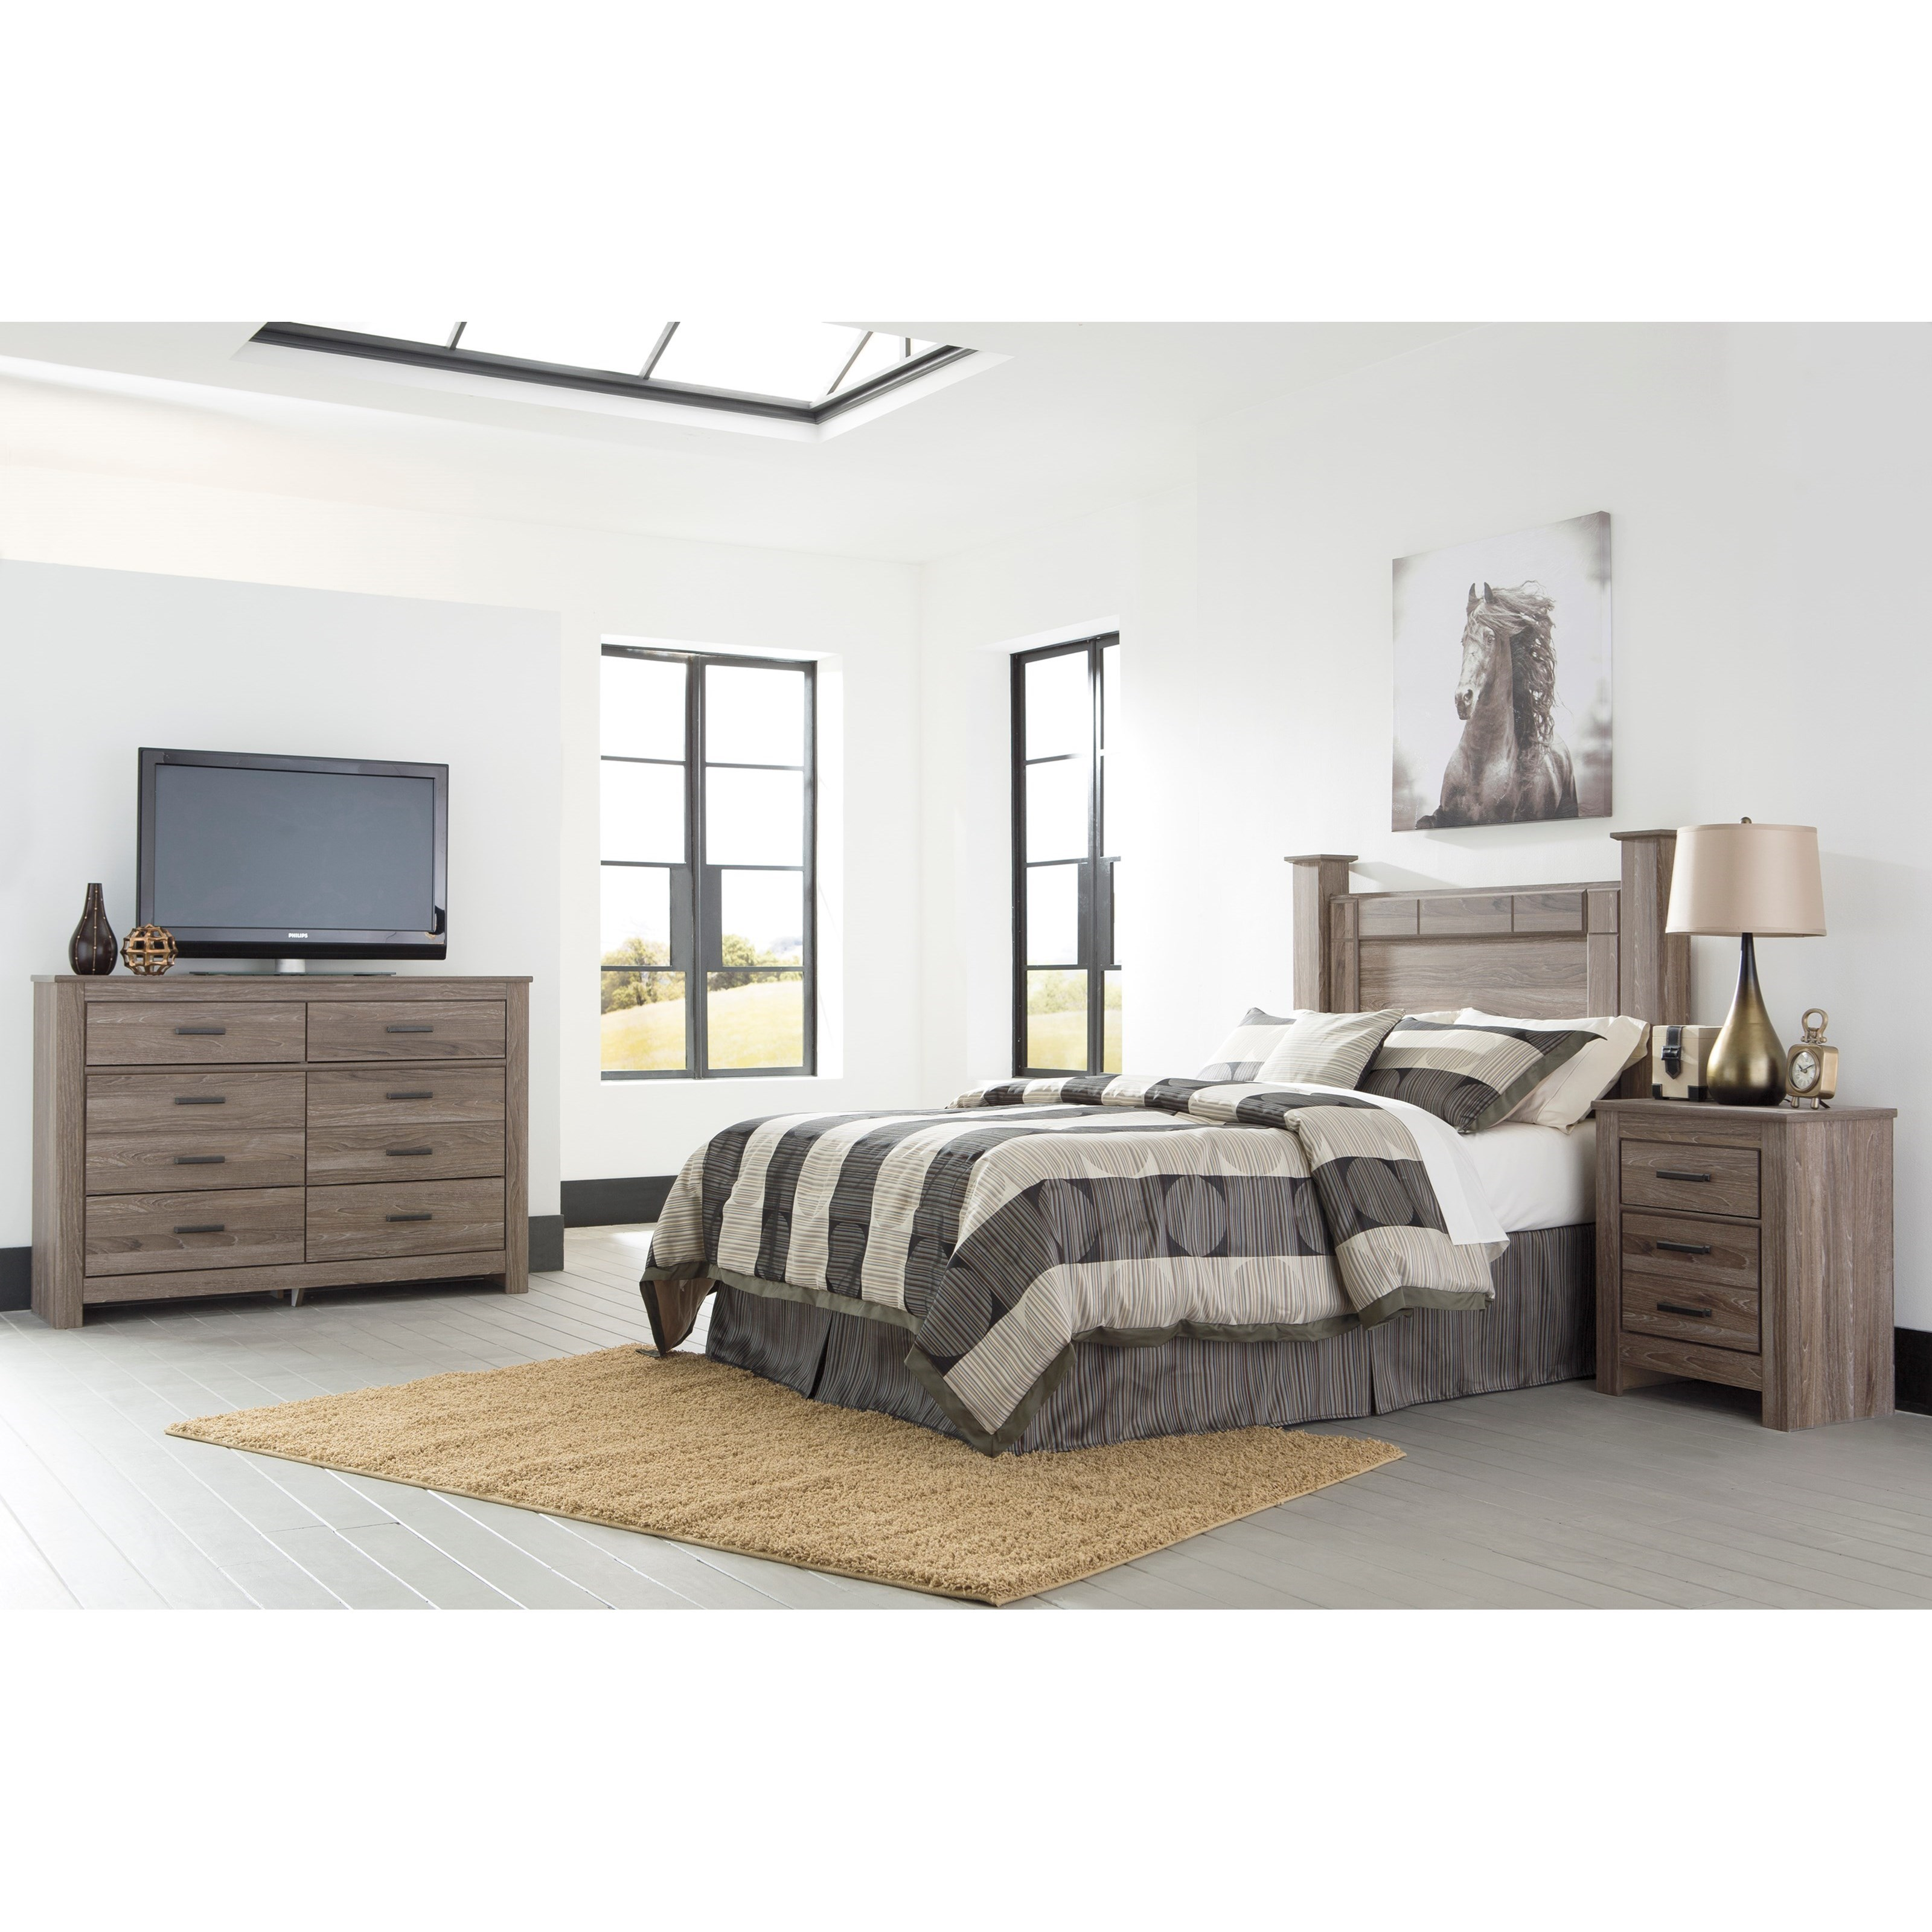 Signature Design By Ashley Waldrew Queen Bedroom Group Value City Furniture Bedroom Groups